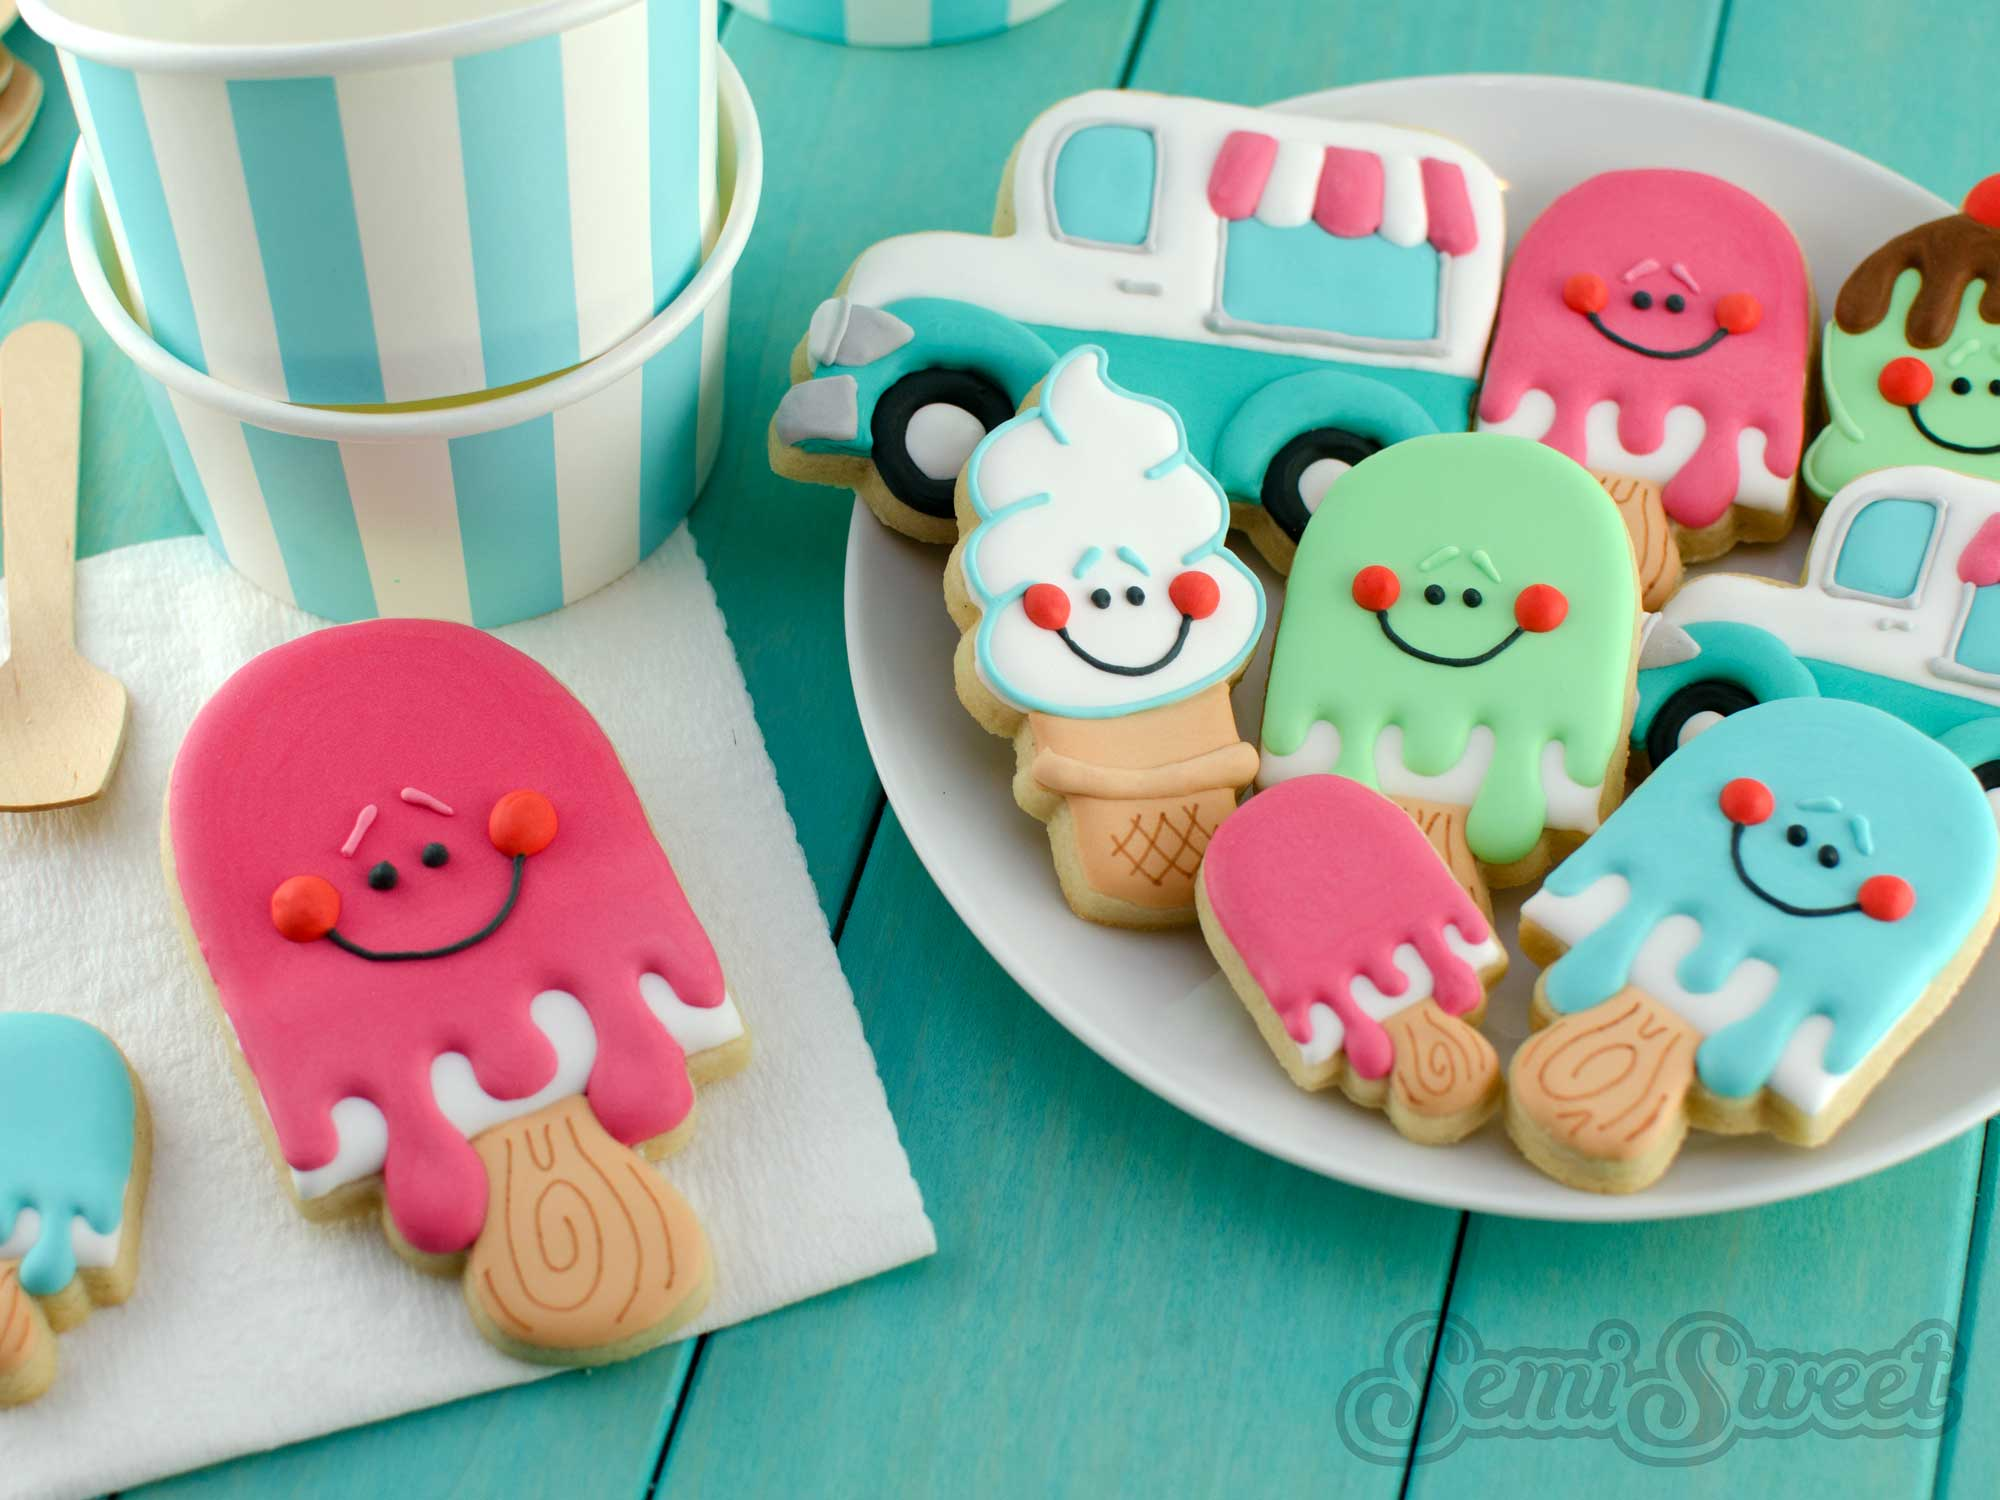 How to Make Popsicle Cookies